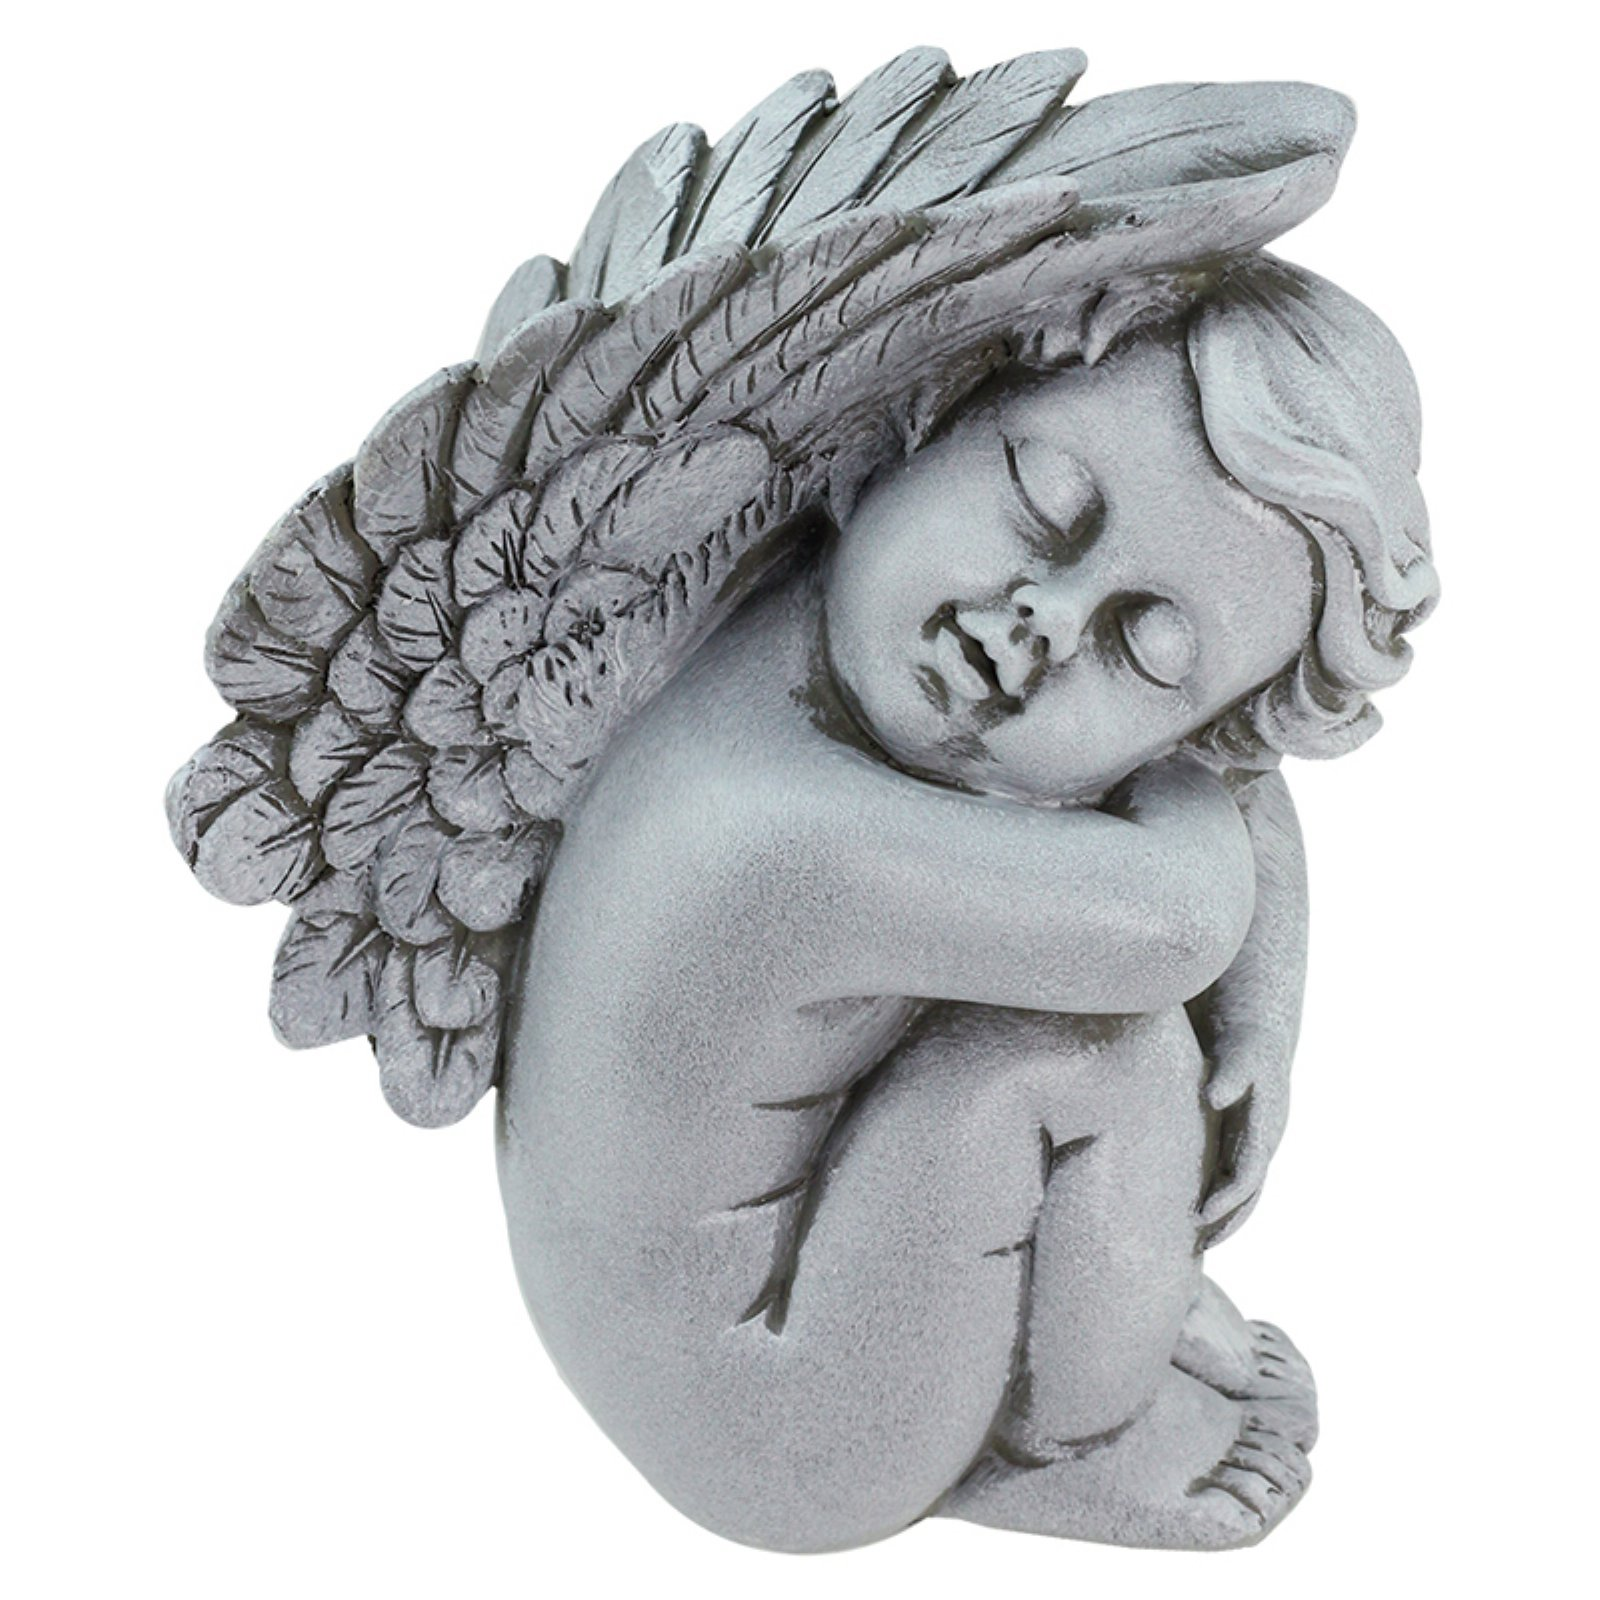 Northlight Heavenly Gardens Sleeping Cherub Angel Outdoor Garden Statue by Northlight